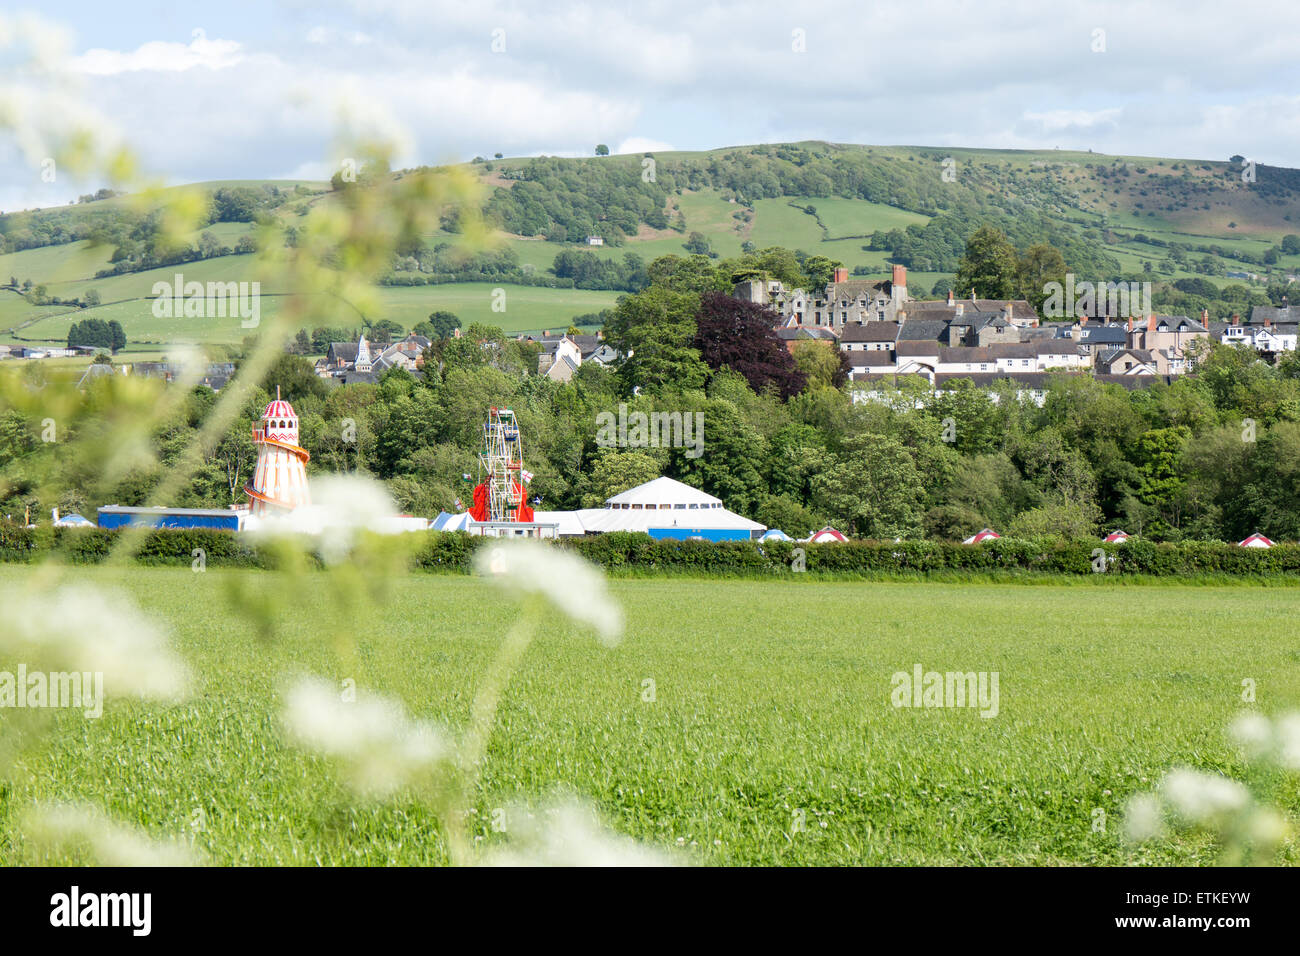 View across the 'How the Light Gets In' site, with fairground, to the town of Hay on Wye during Hay Festival - Stock Image